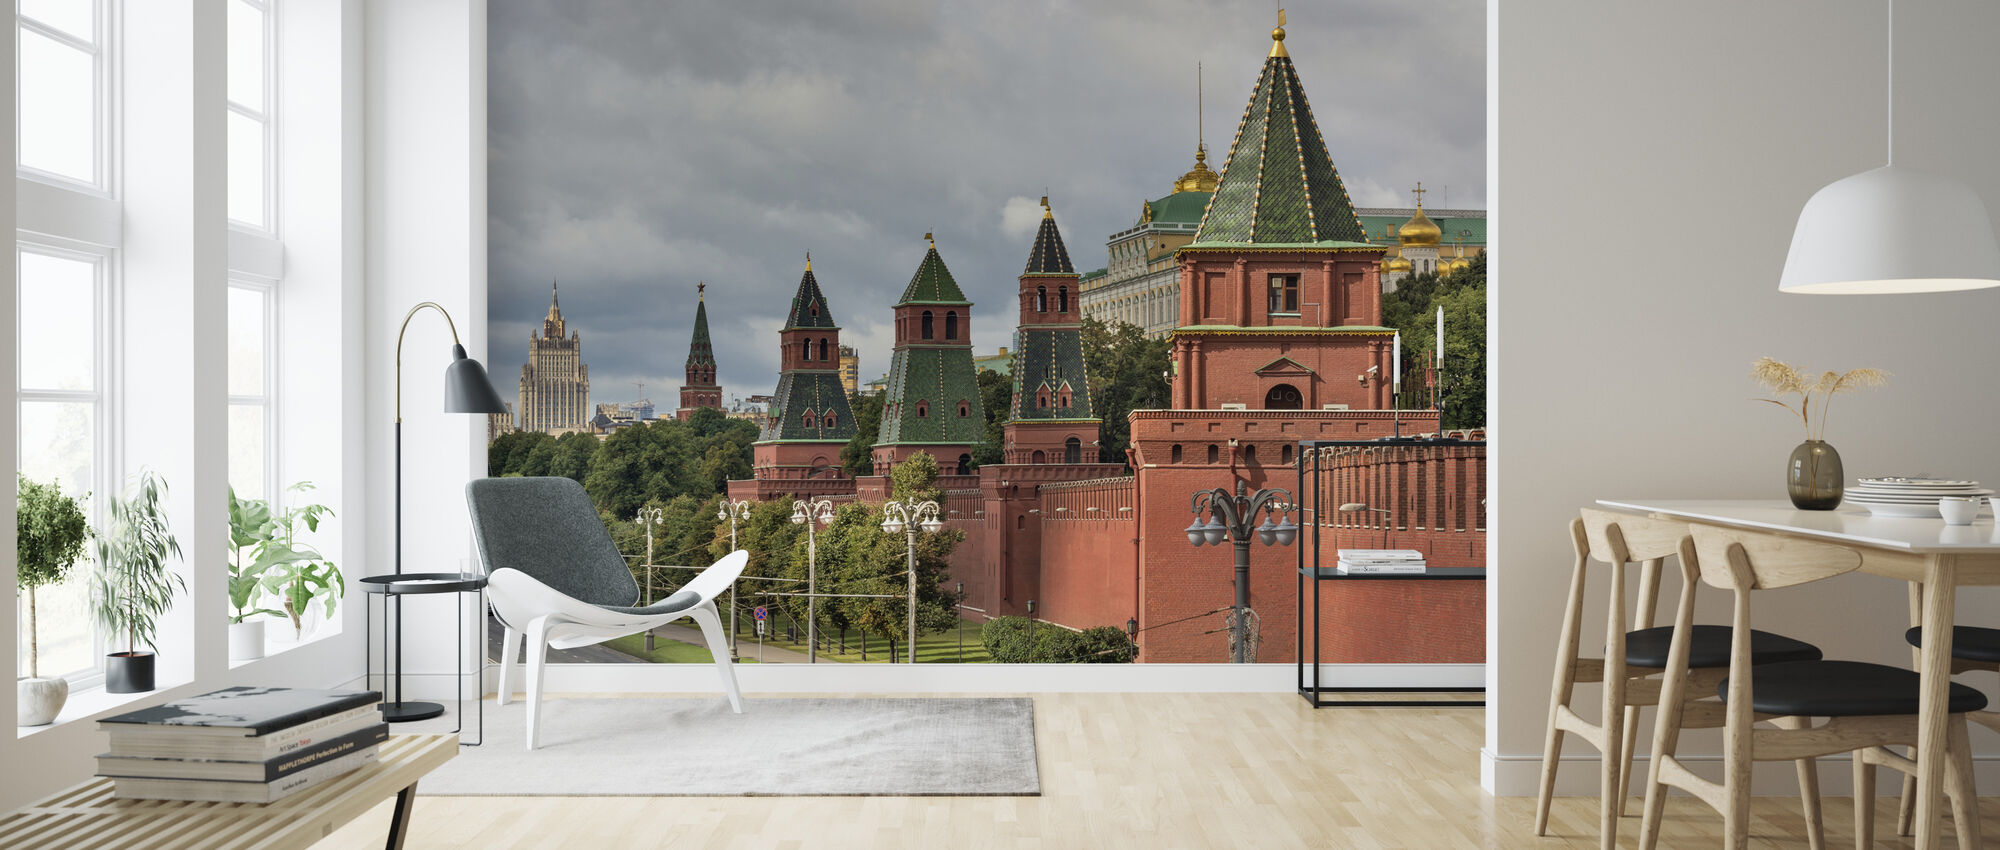 The Fortified Walls of Moscow Kremlin - Wallpaper - Living Room